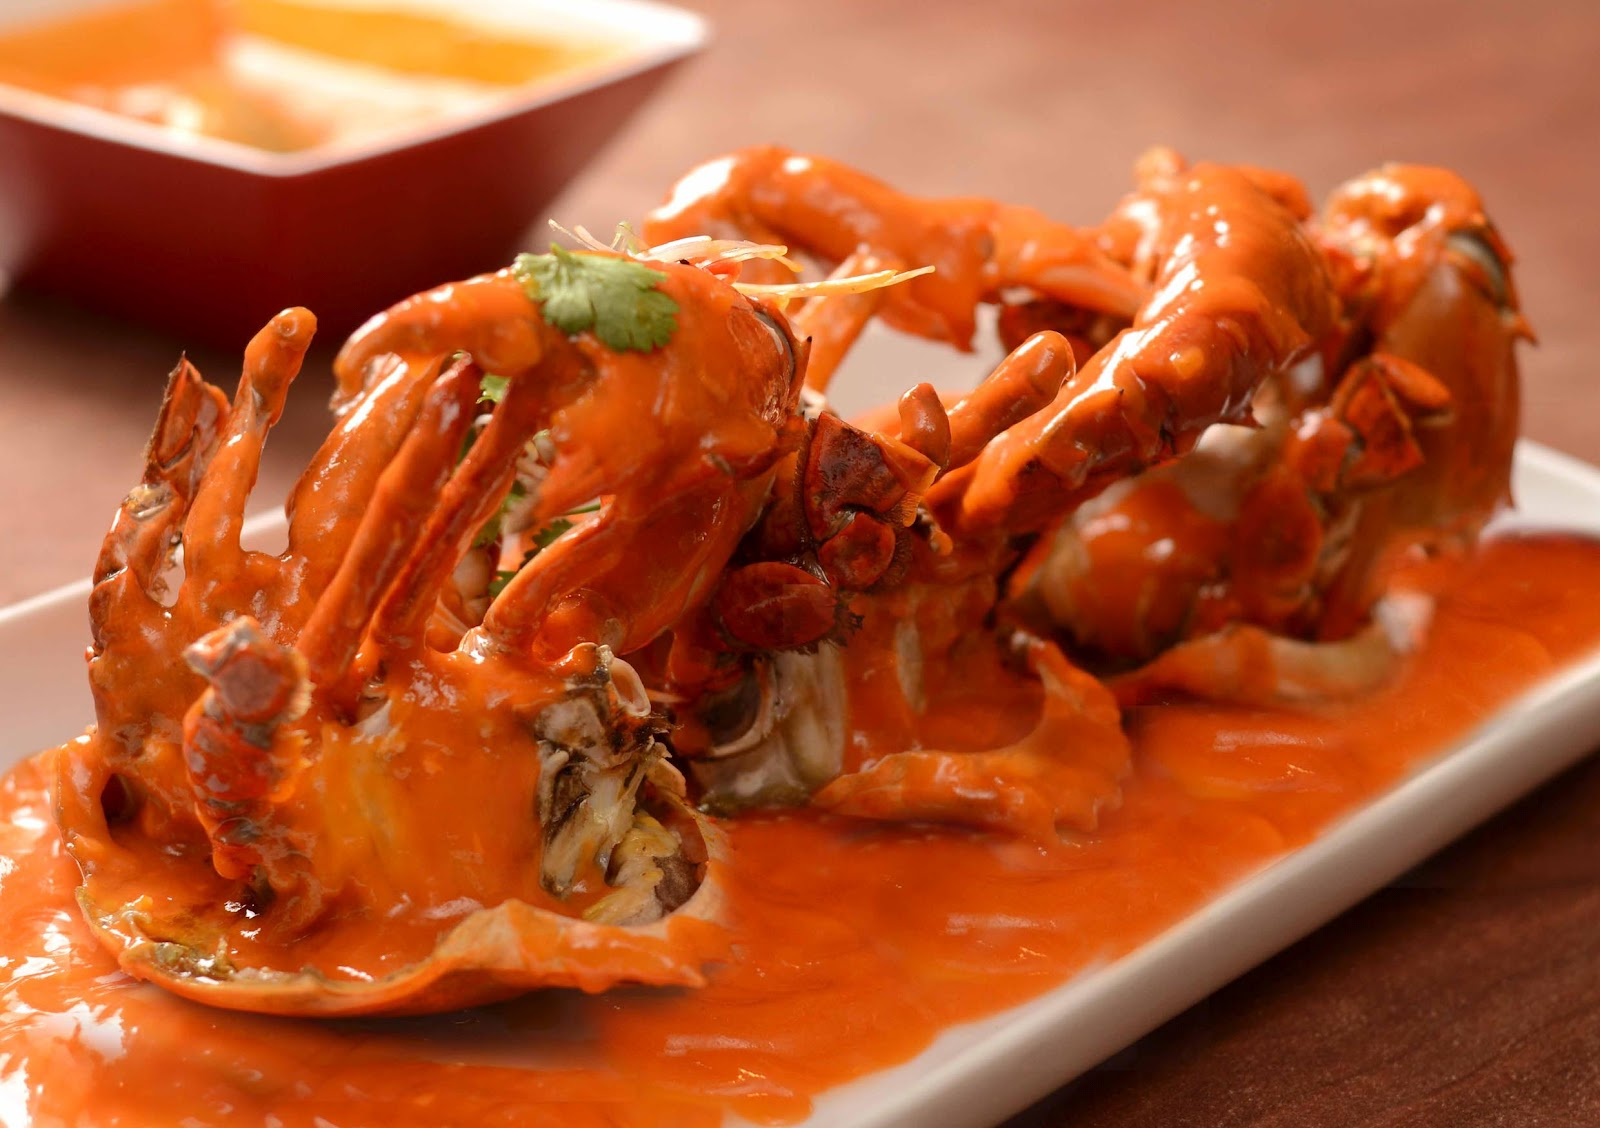 ... or prickly chicken chili hot crab dip hot crab dip crab dip chili crab